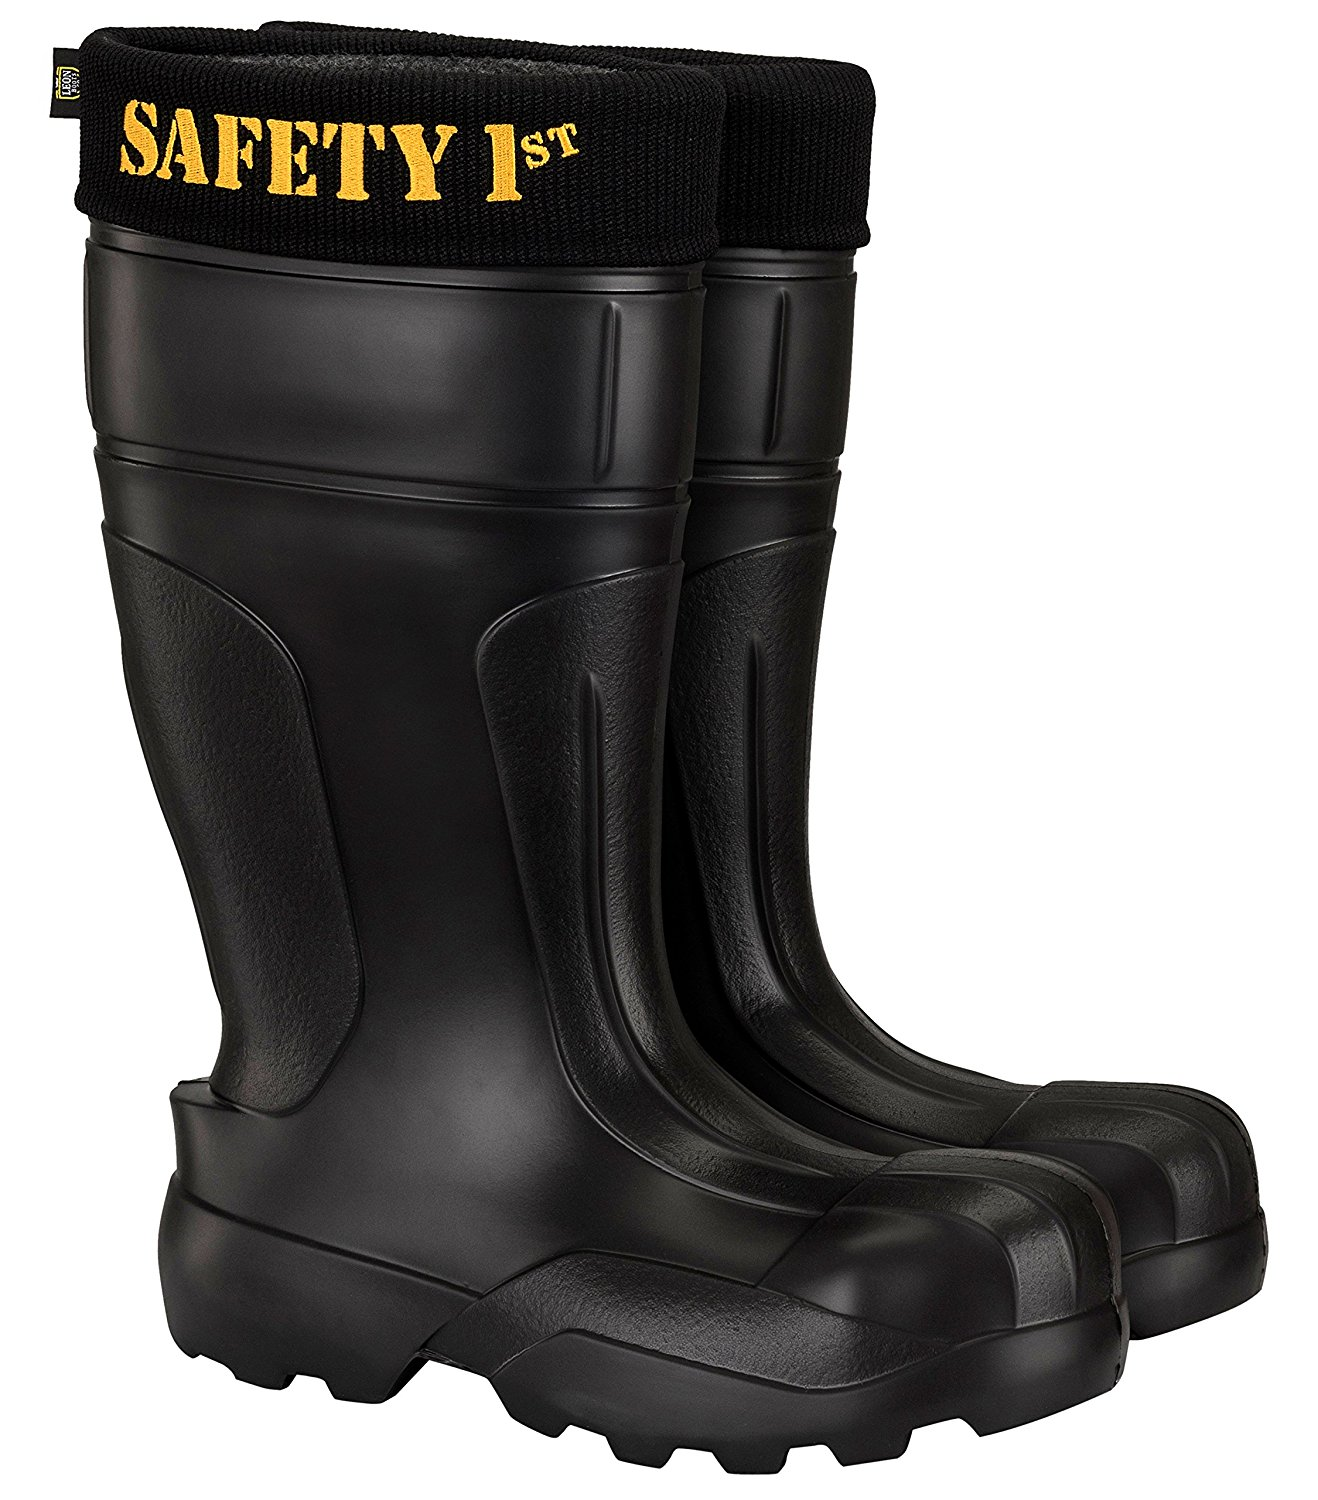 108f577aeb7 Cheap Jcb Safety Boots, find Jcb Safety Boots deals on line at ...